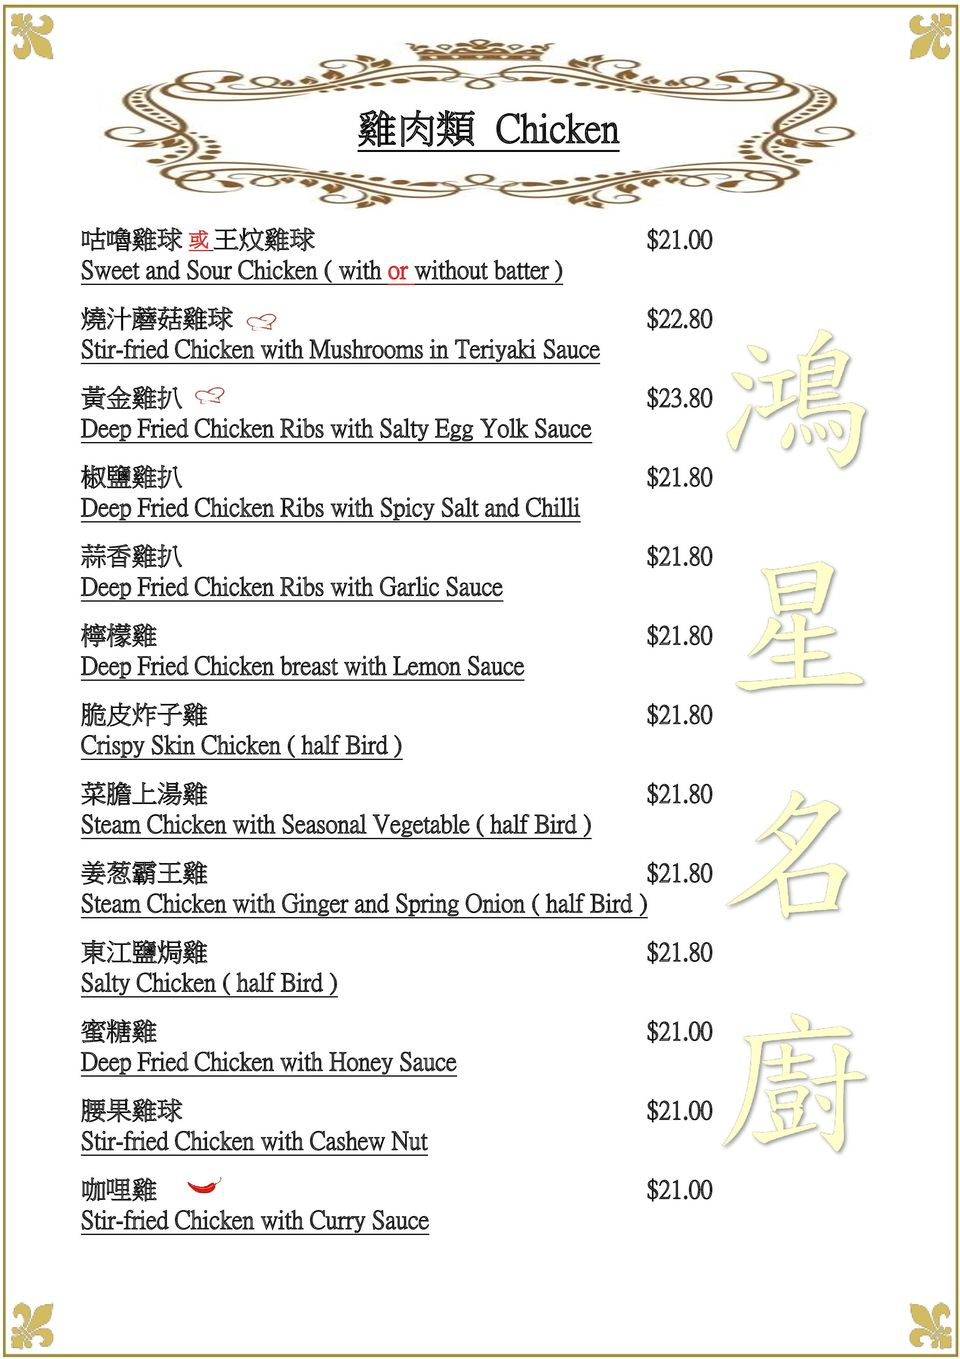 80 Deep Fried Chicken breast with Lemon Sauce 脆 皮 炸 子 雞 $21.80 Crispy Skin Chicken ( half Bird ) 菜 膽 上 湯 雞 $21.80 Steam Chicken with Seasonal Vegetable ( half Bird ) 姜 葱 霸 王 雞 $21.